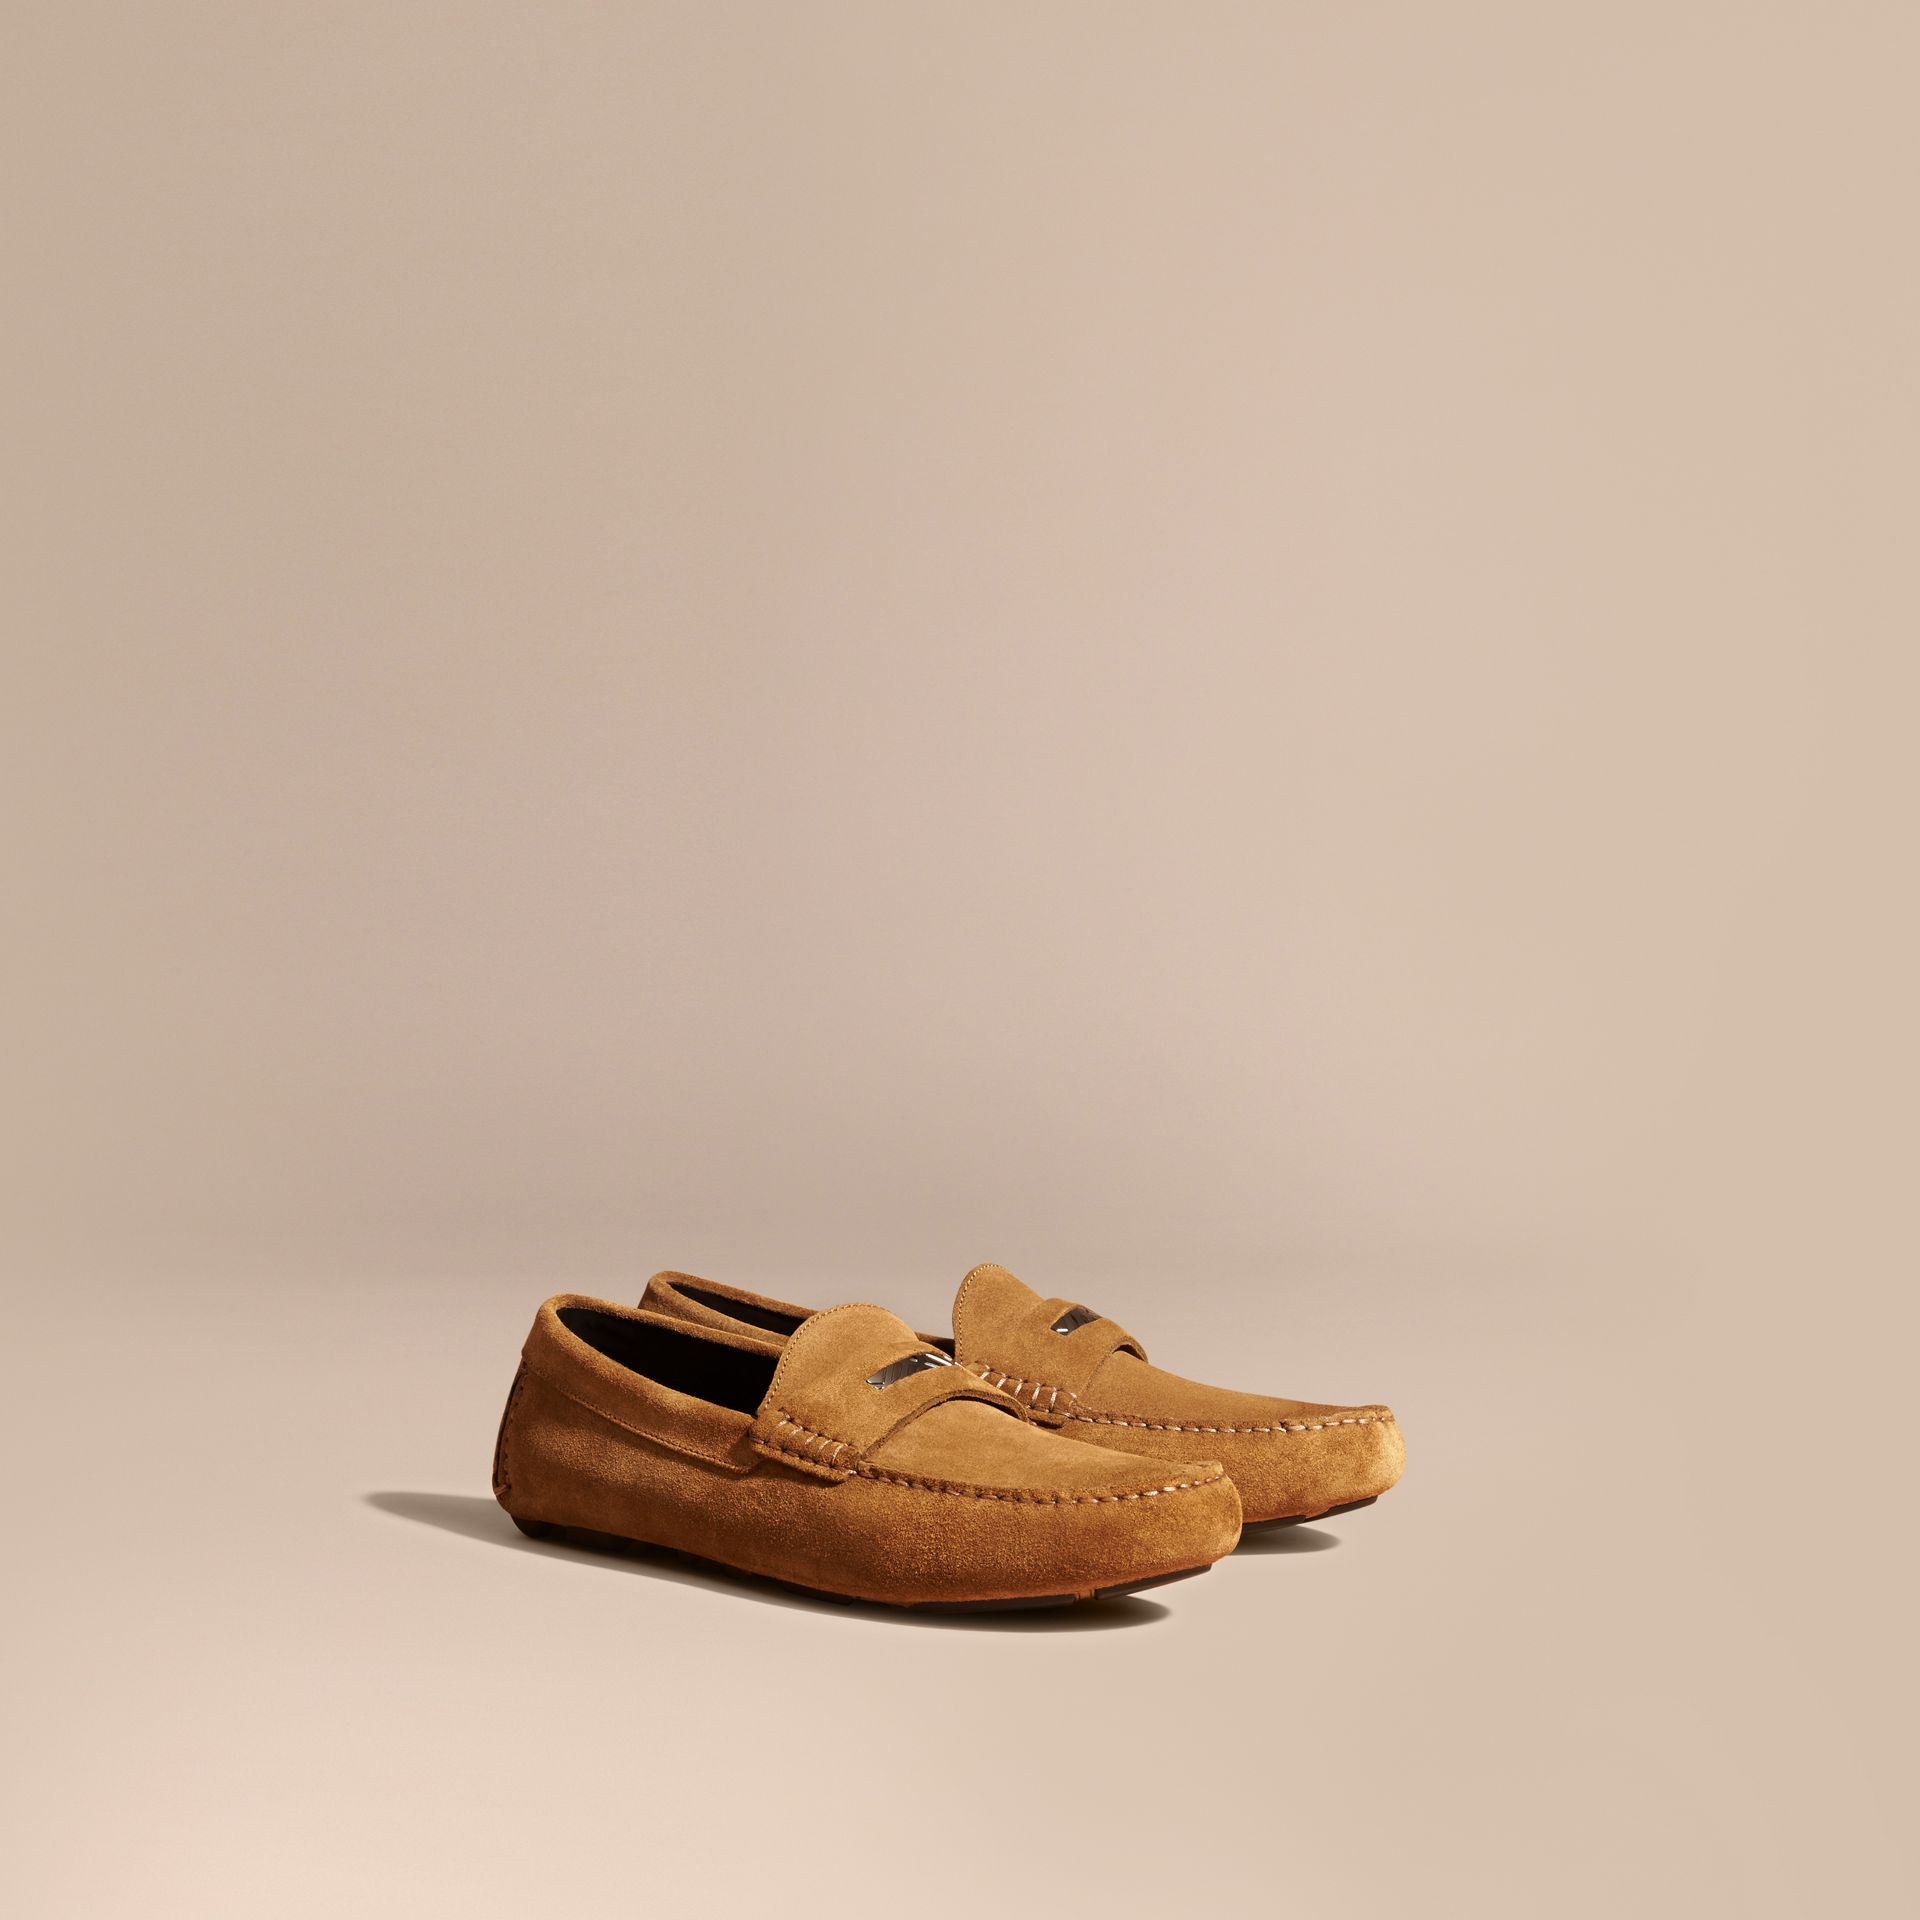 Caramel Suede Loafers with Engraved Check Detail Caramel - gallery image 1